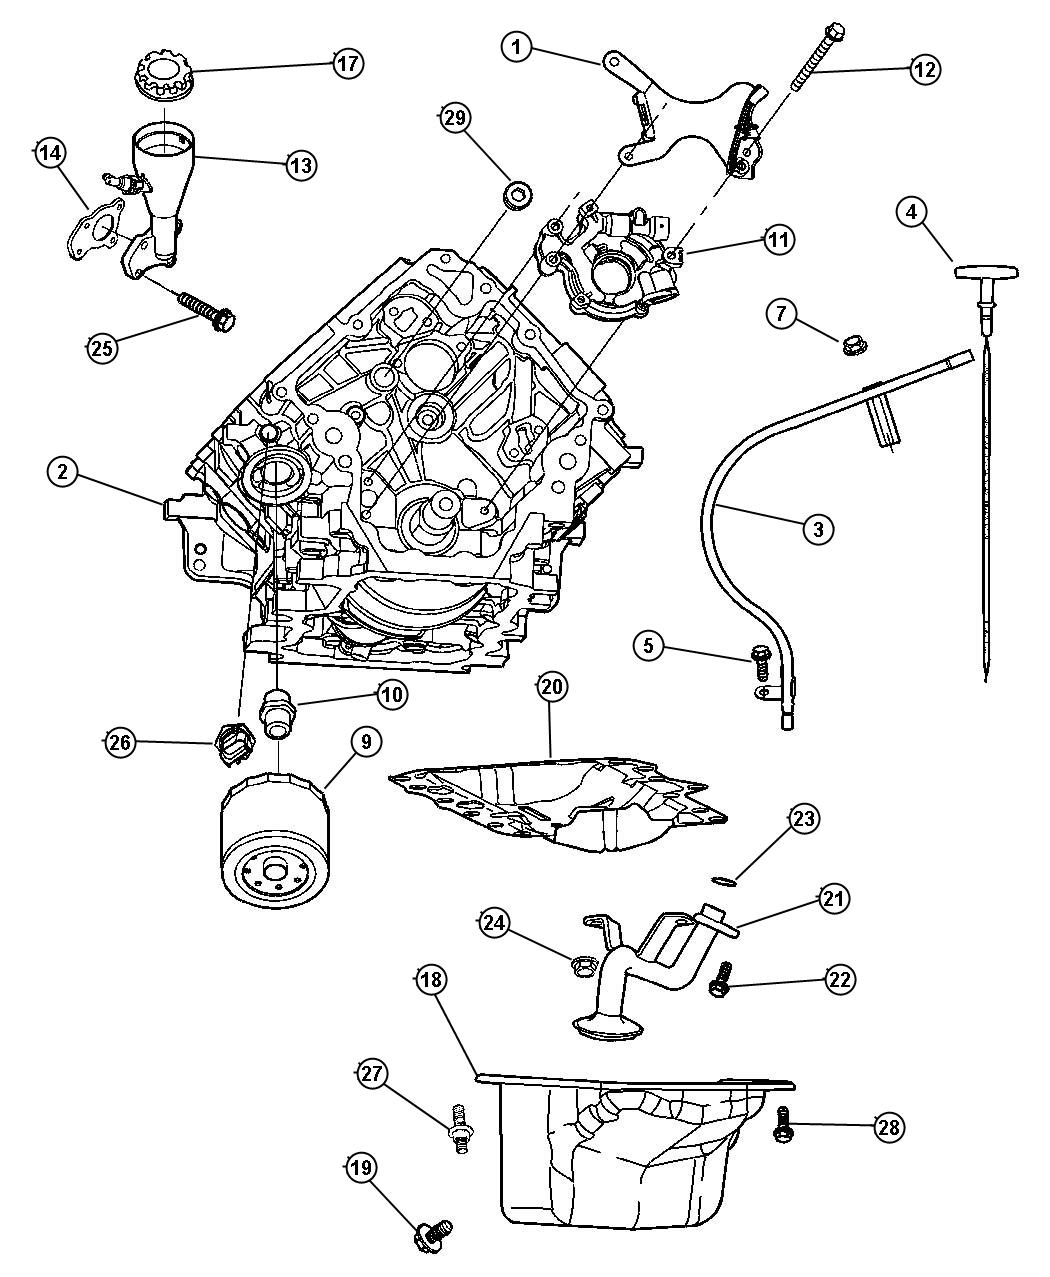 Dodge Durango Timing Drive Package Used For Chain And